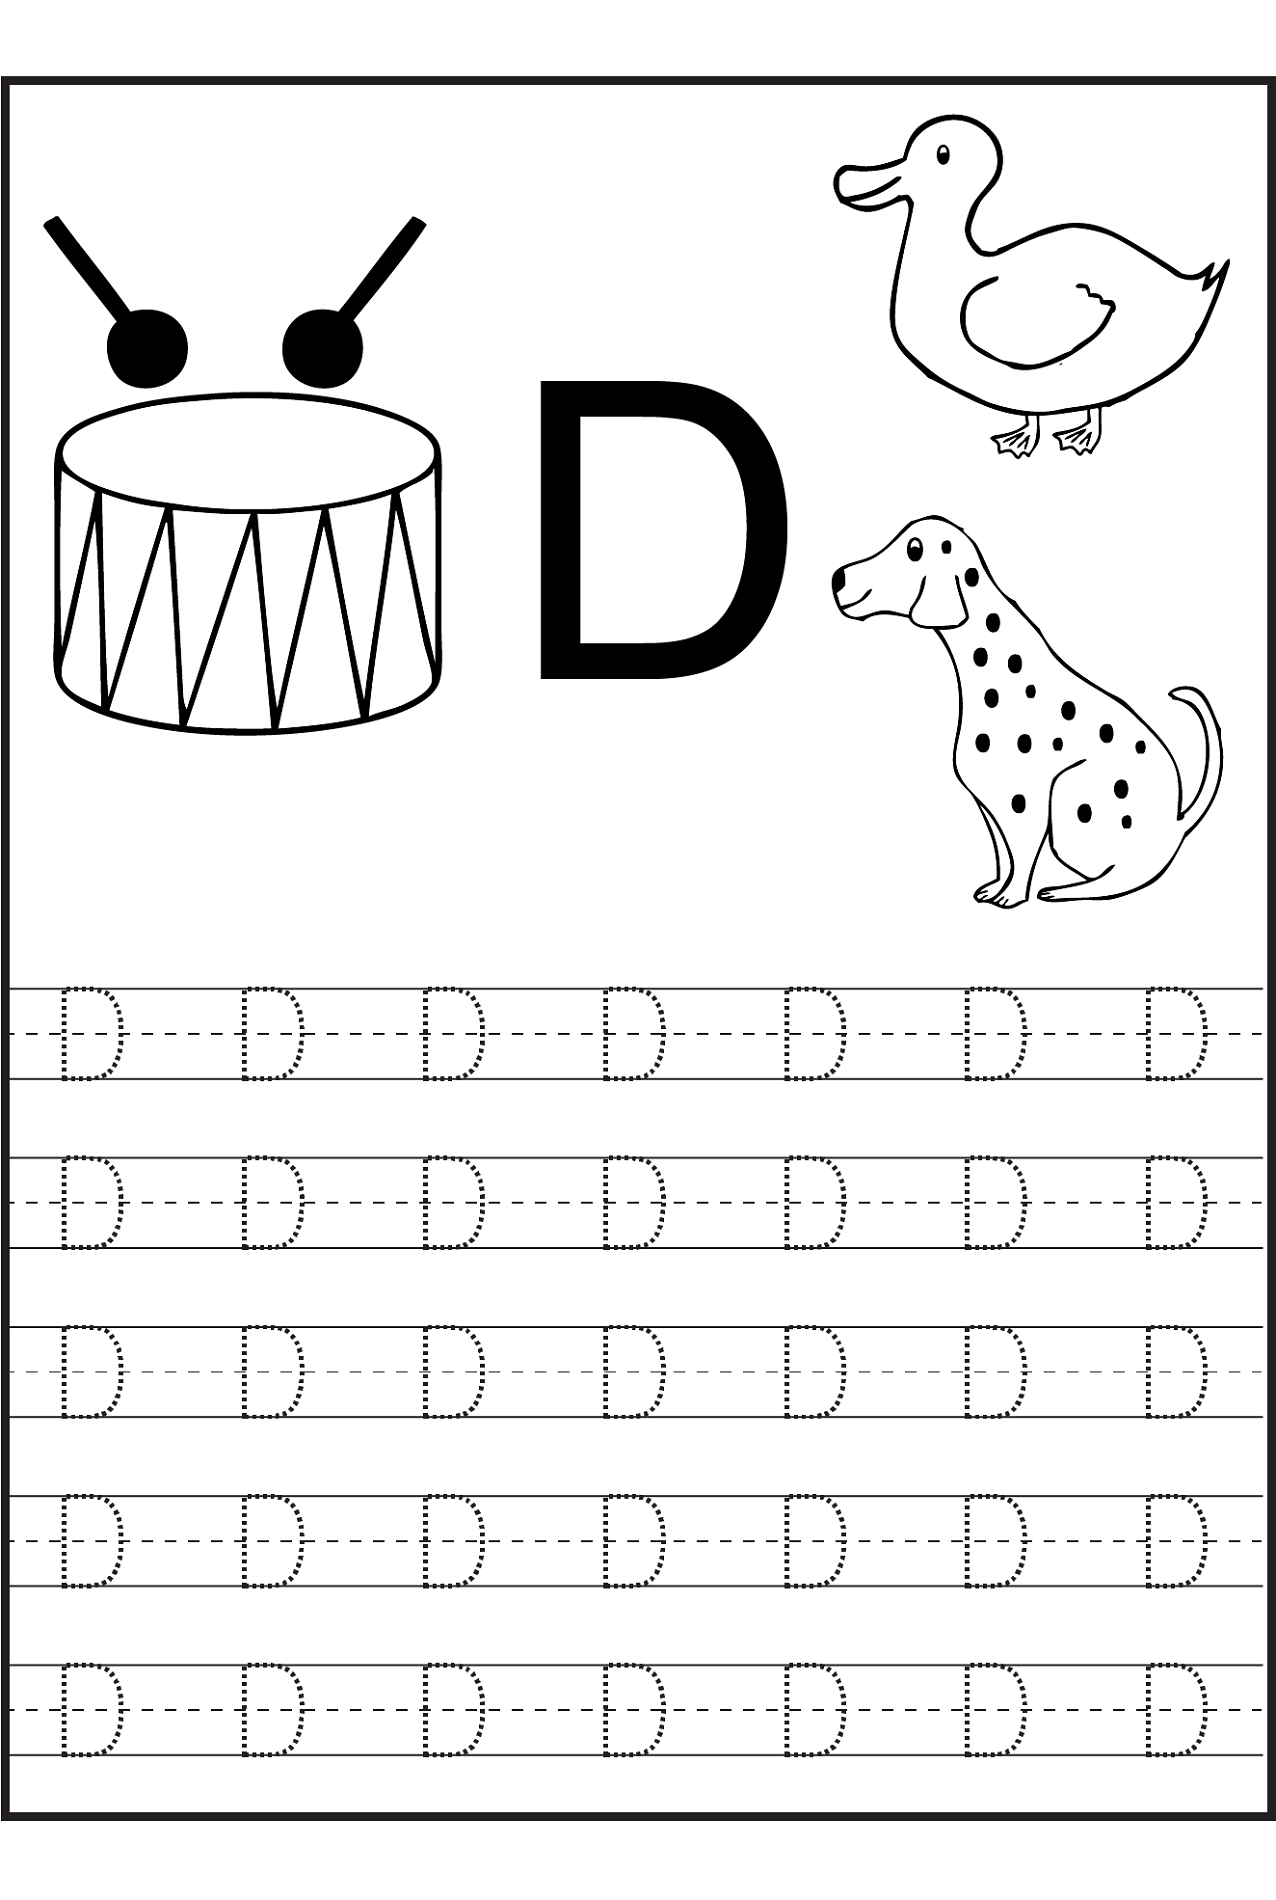 Worksheet Free Traceable Letters traceable letters free activity shelter letter d